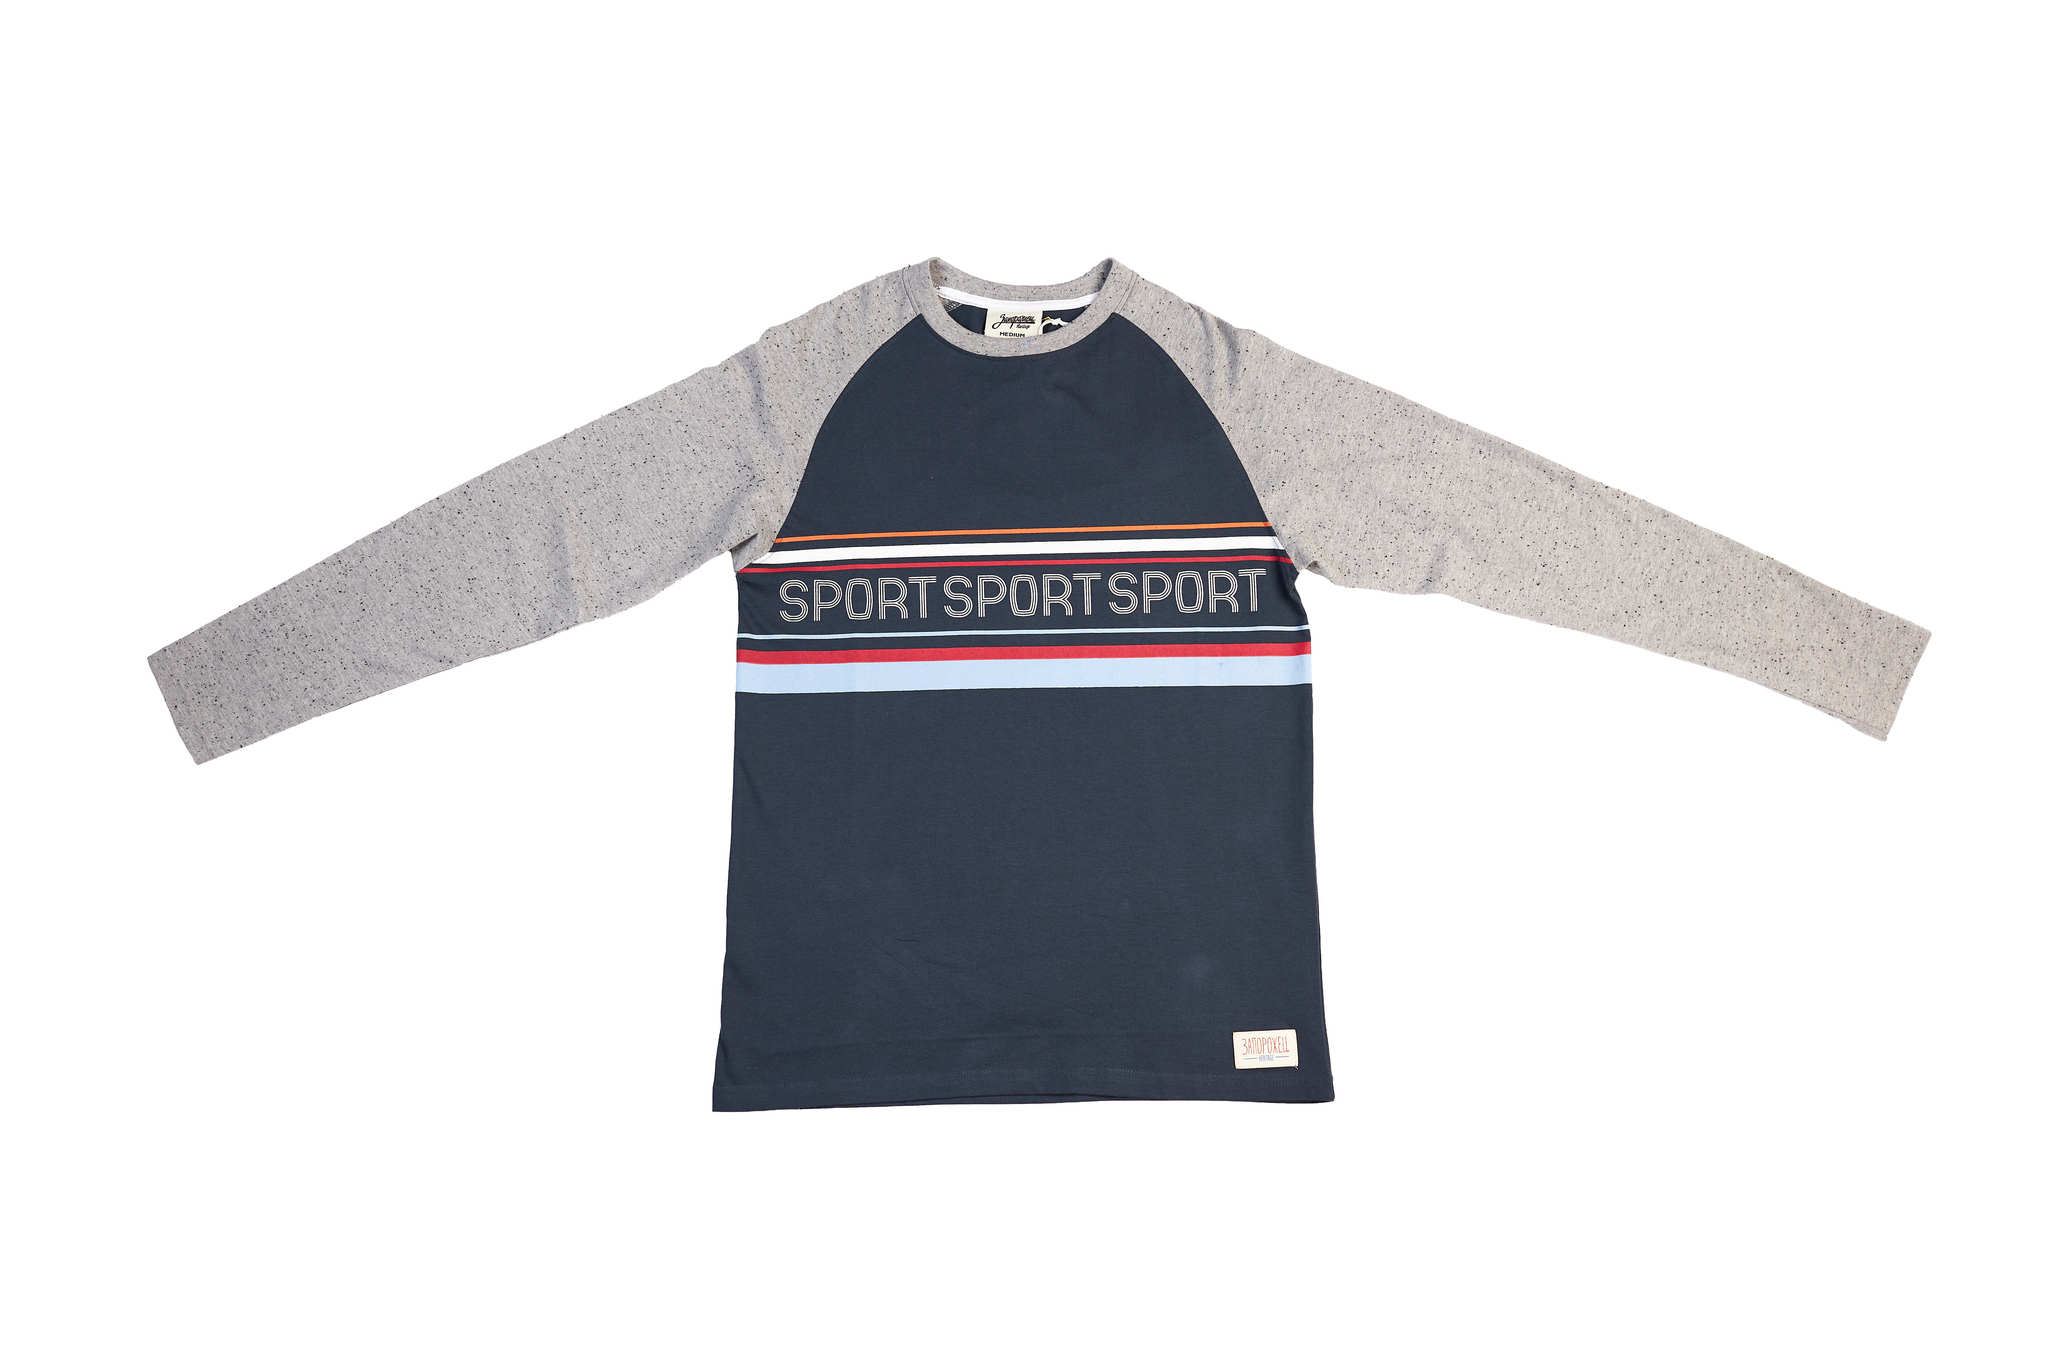 Лонгслив ЗАПОРОЖЕЦ Sport 1 Blue Dusk/Grey Sperkale